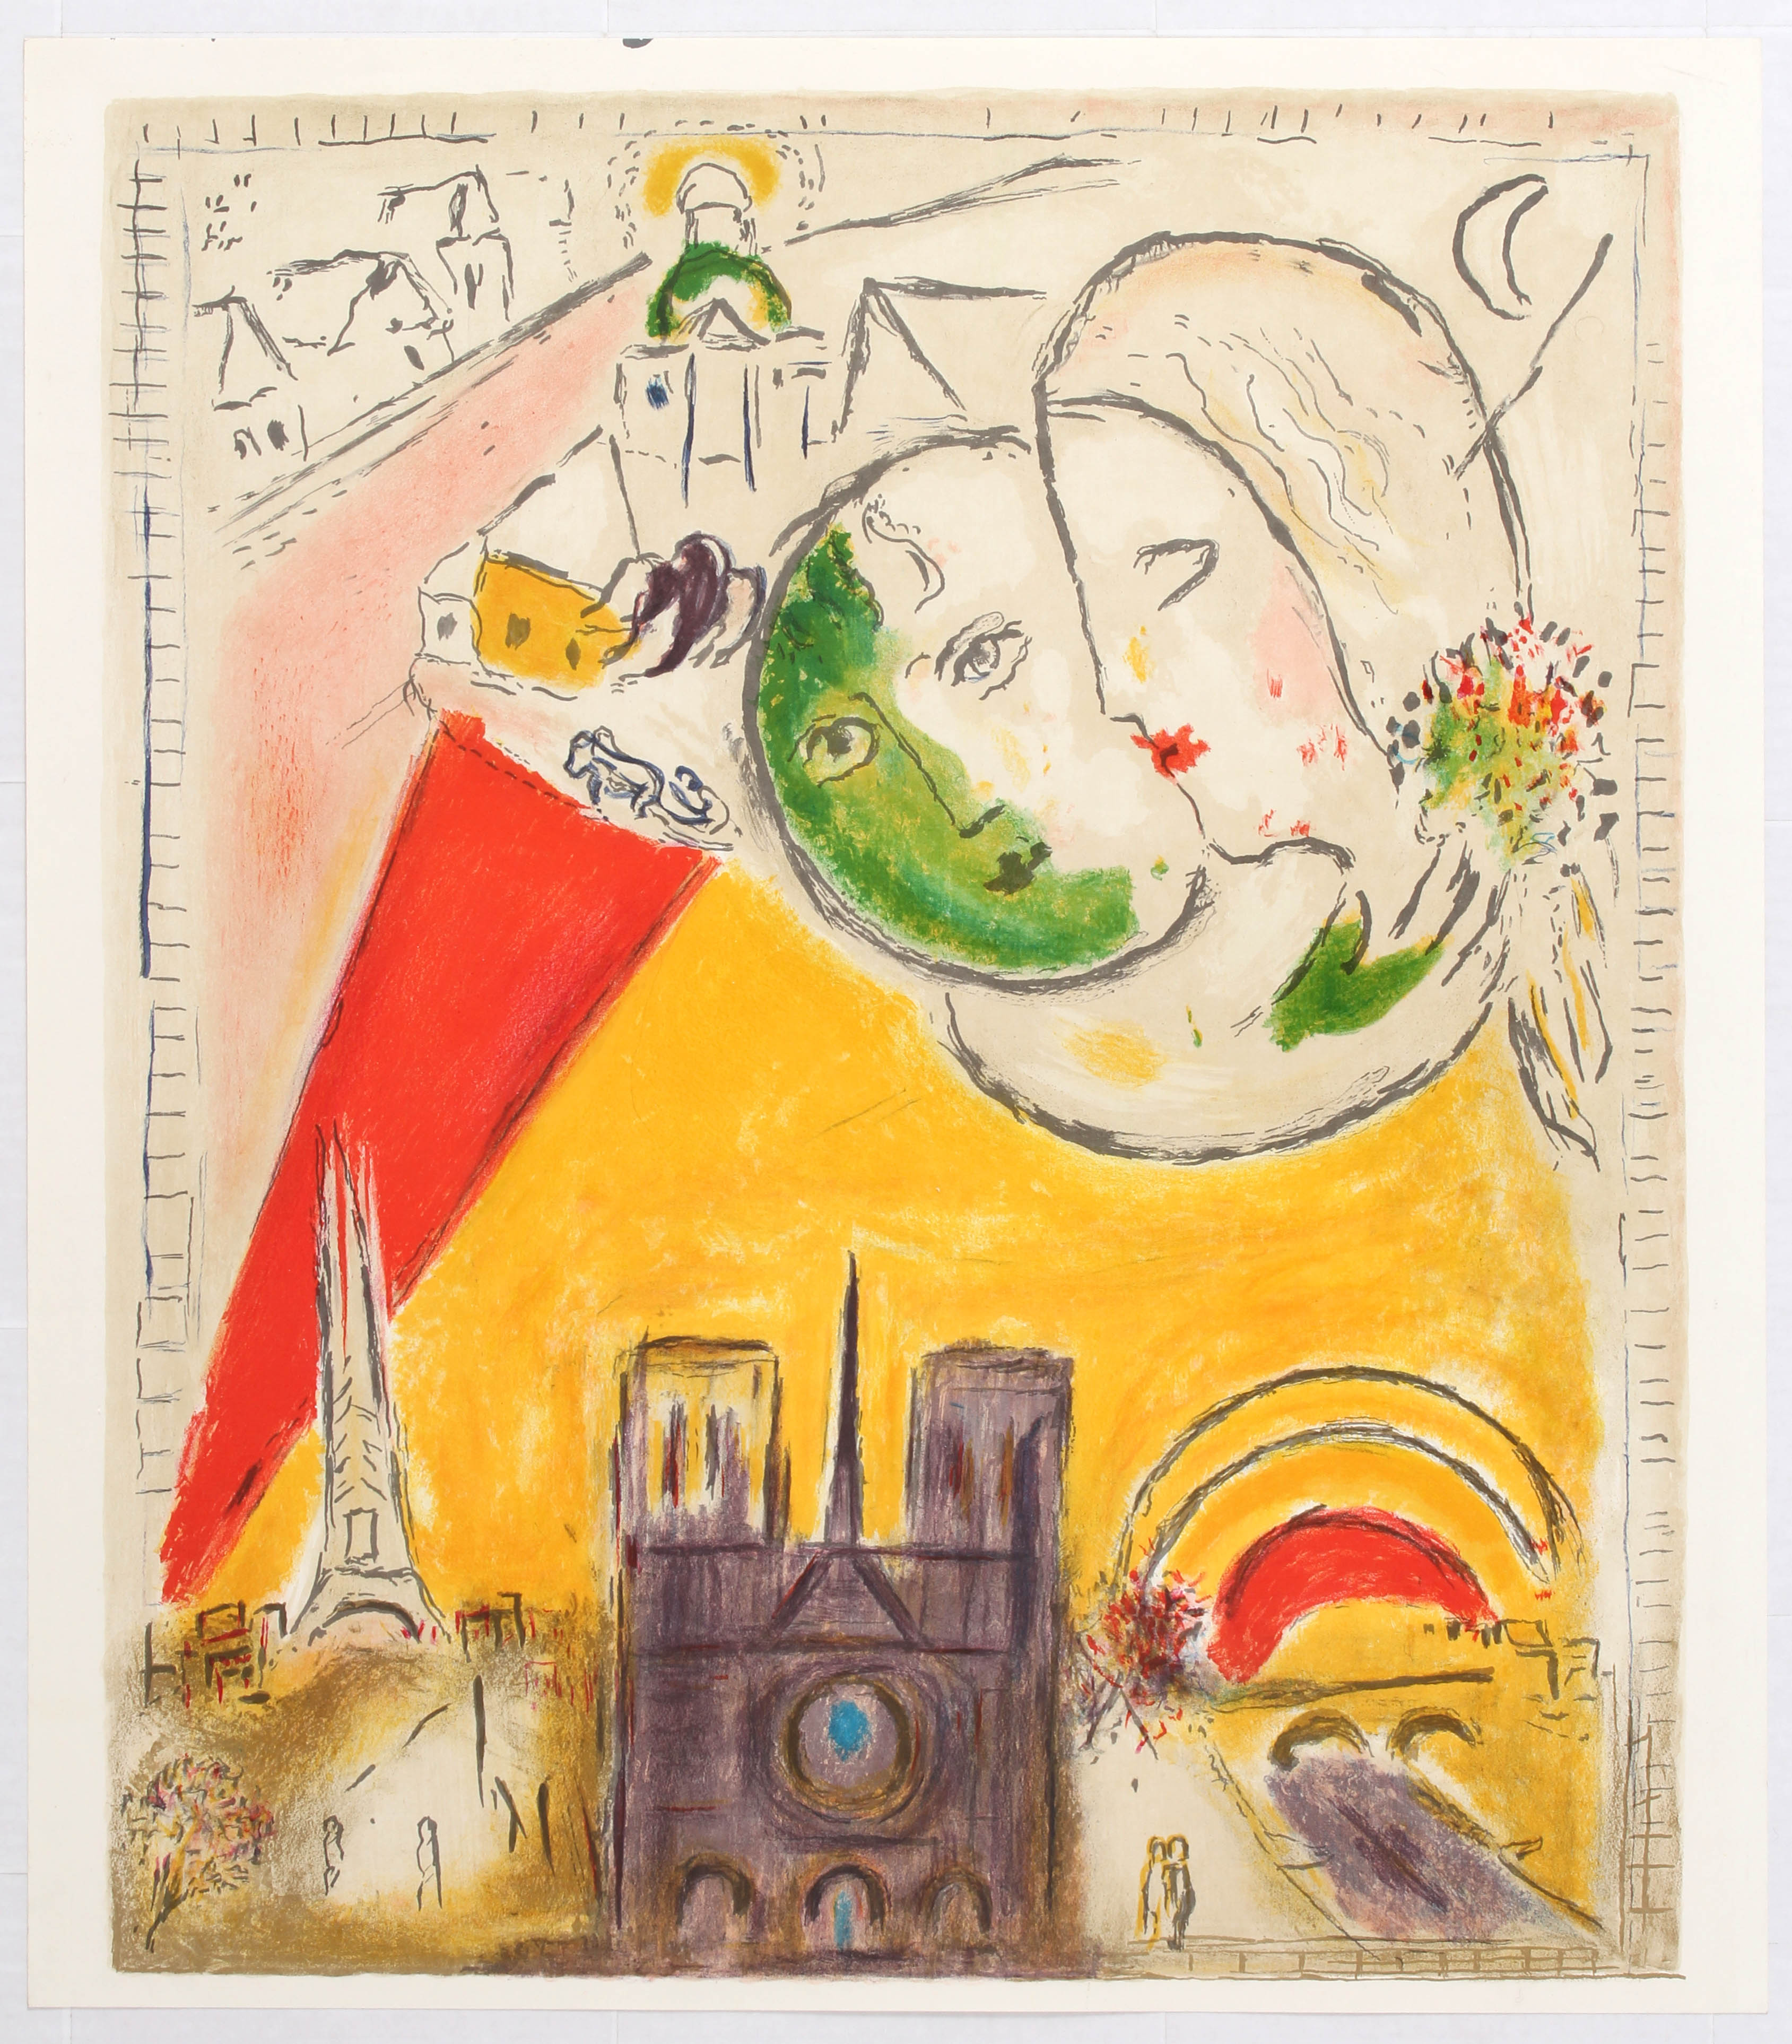 Lot 1515 - Advertising Poster Chagall Le Dimanche